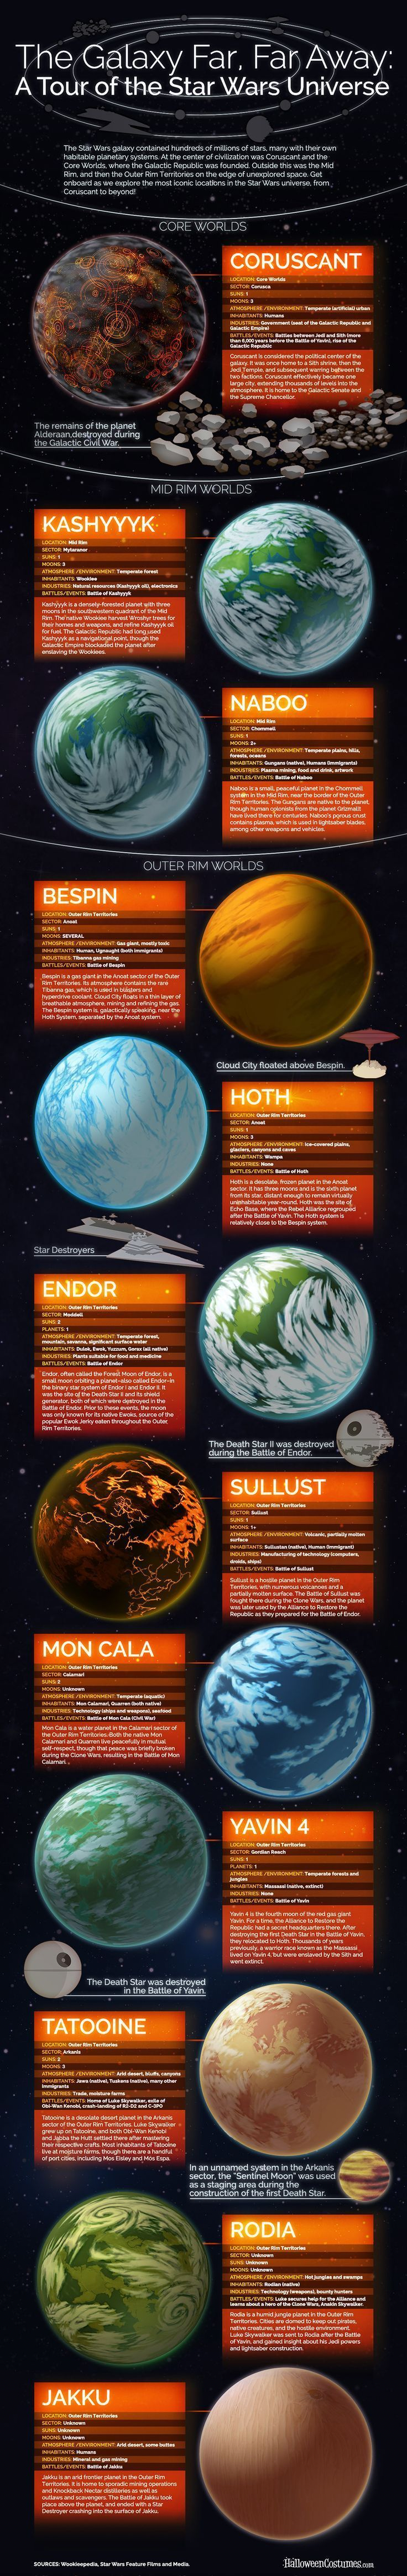 The Galaxy Far Far Away A Tour of the Star Wars Universe Infographic